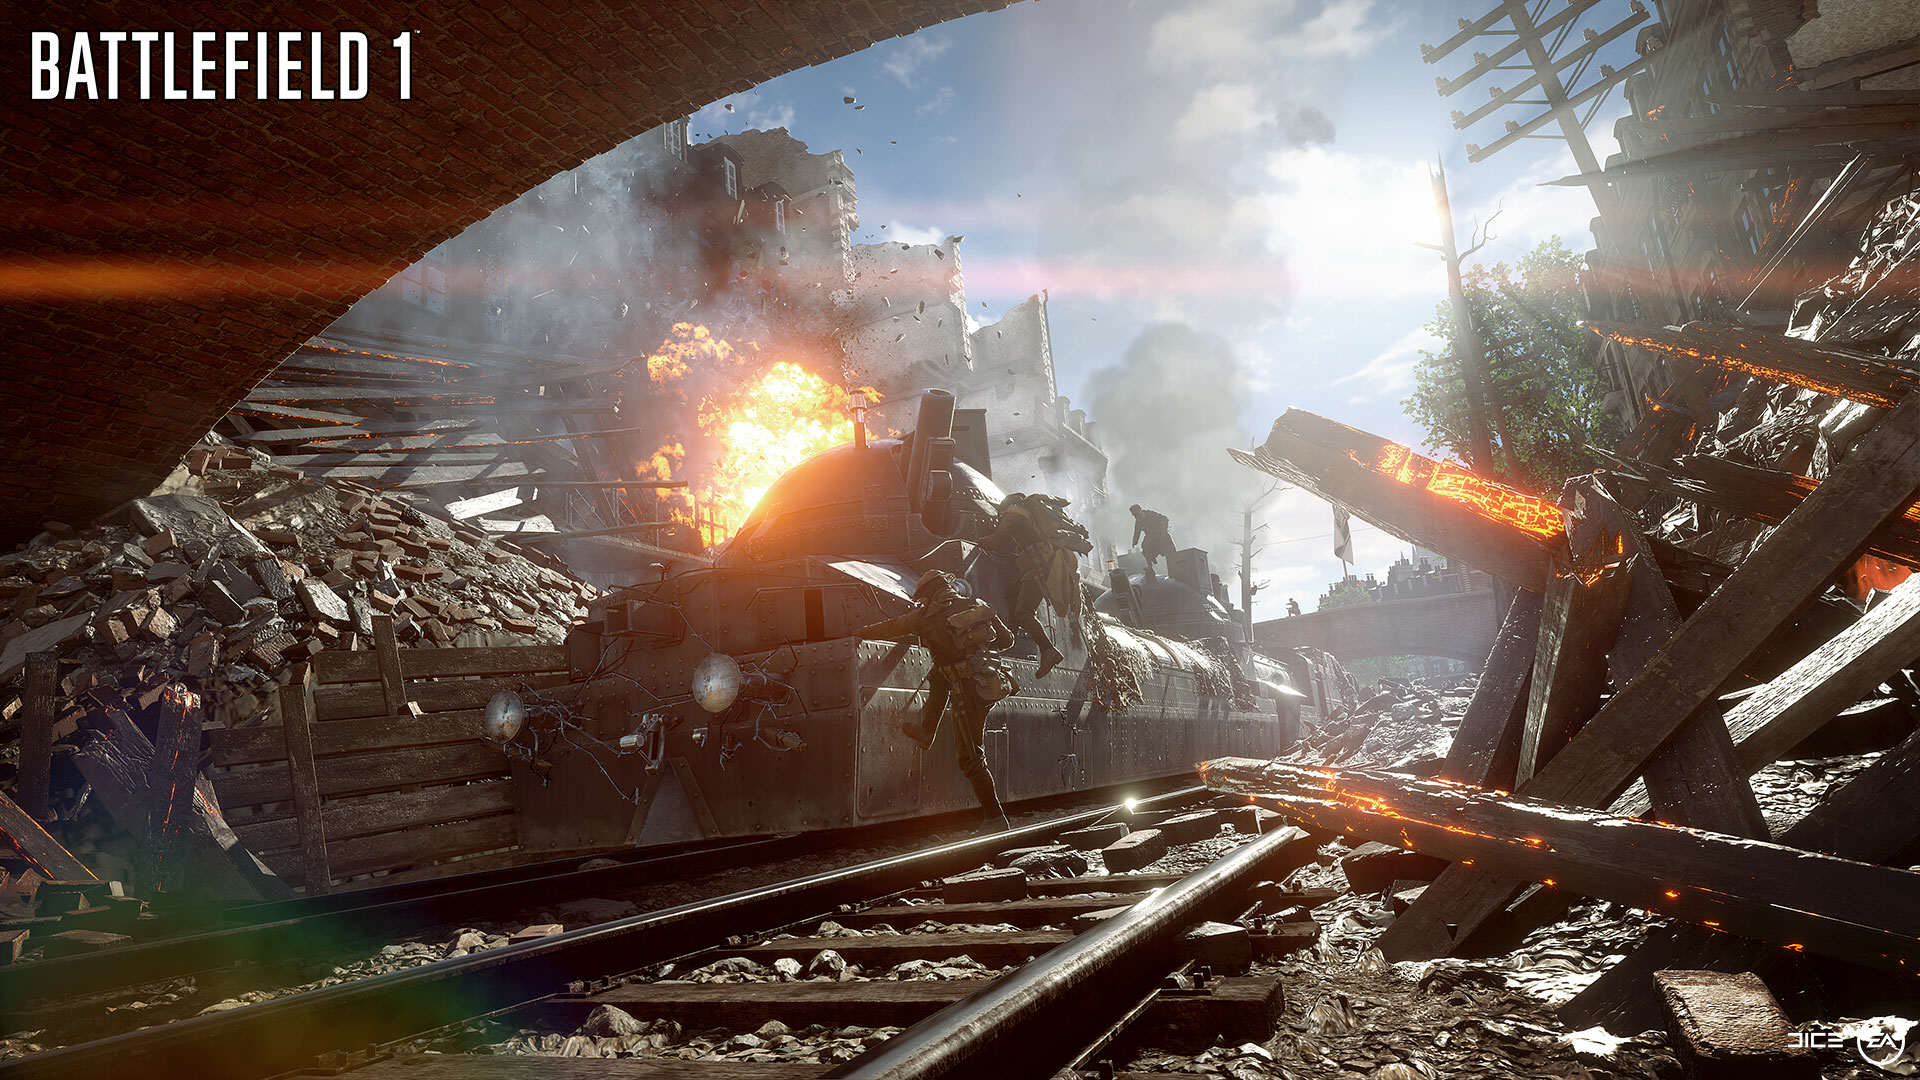 BF1 EA PLAY 04 BEHEMOTH TRAIN WM Battlefield 1 Gets Epic New Trailer And Gameplay Features